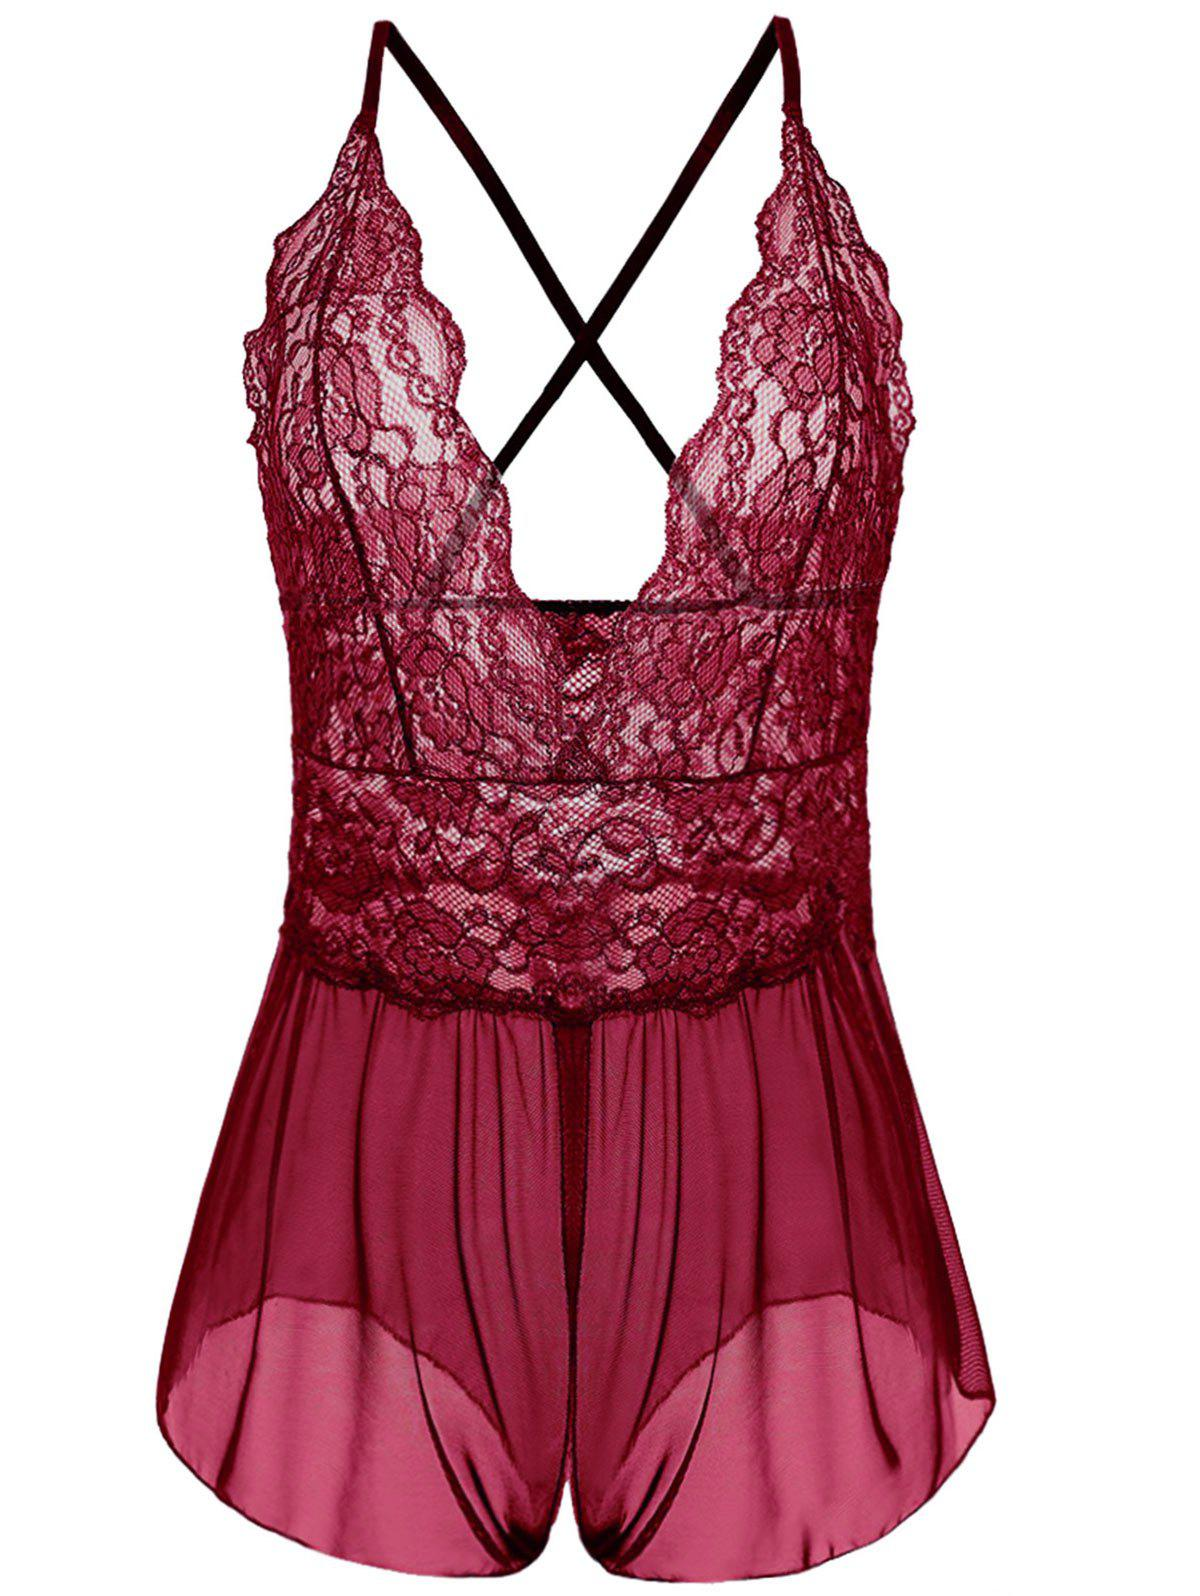 Plunging Neck See Through Plus Size Babydoll - WINE RED 3XL